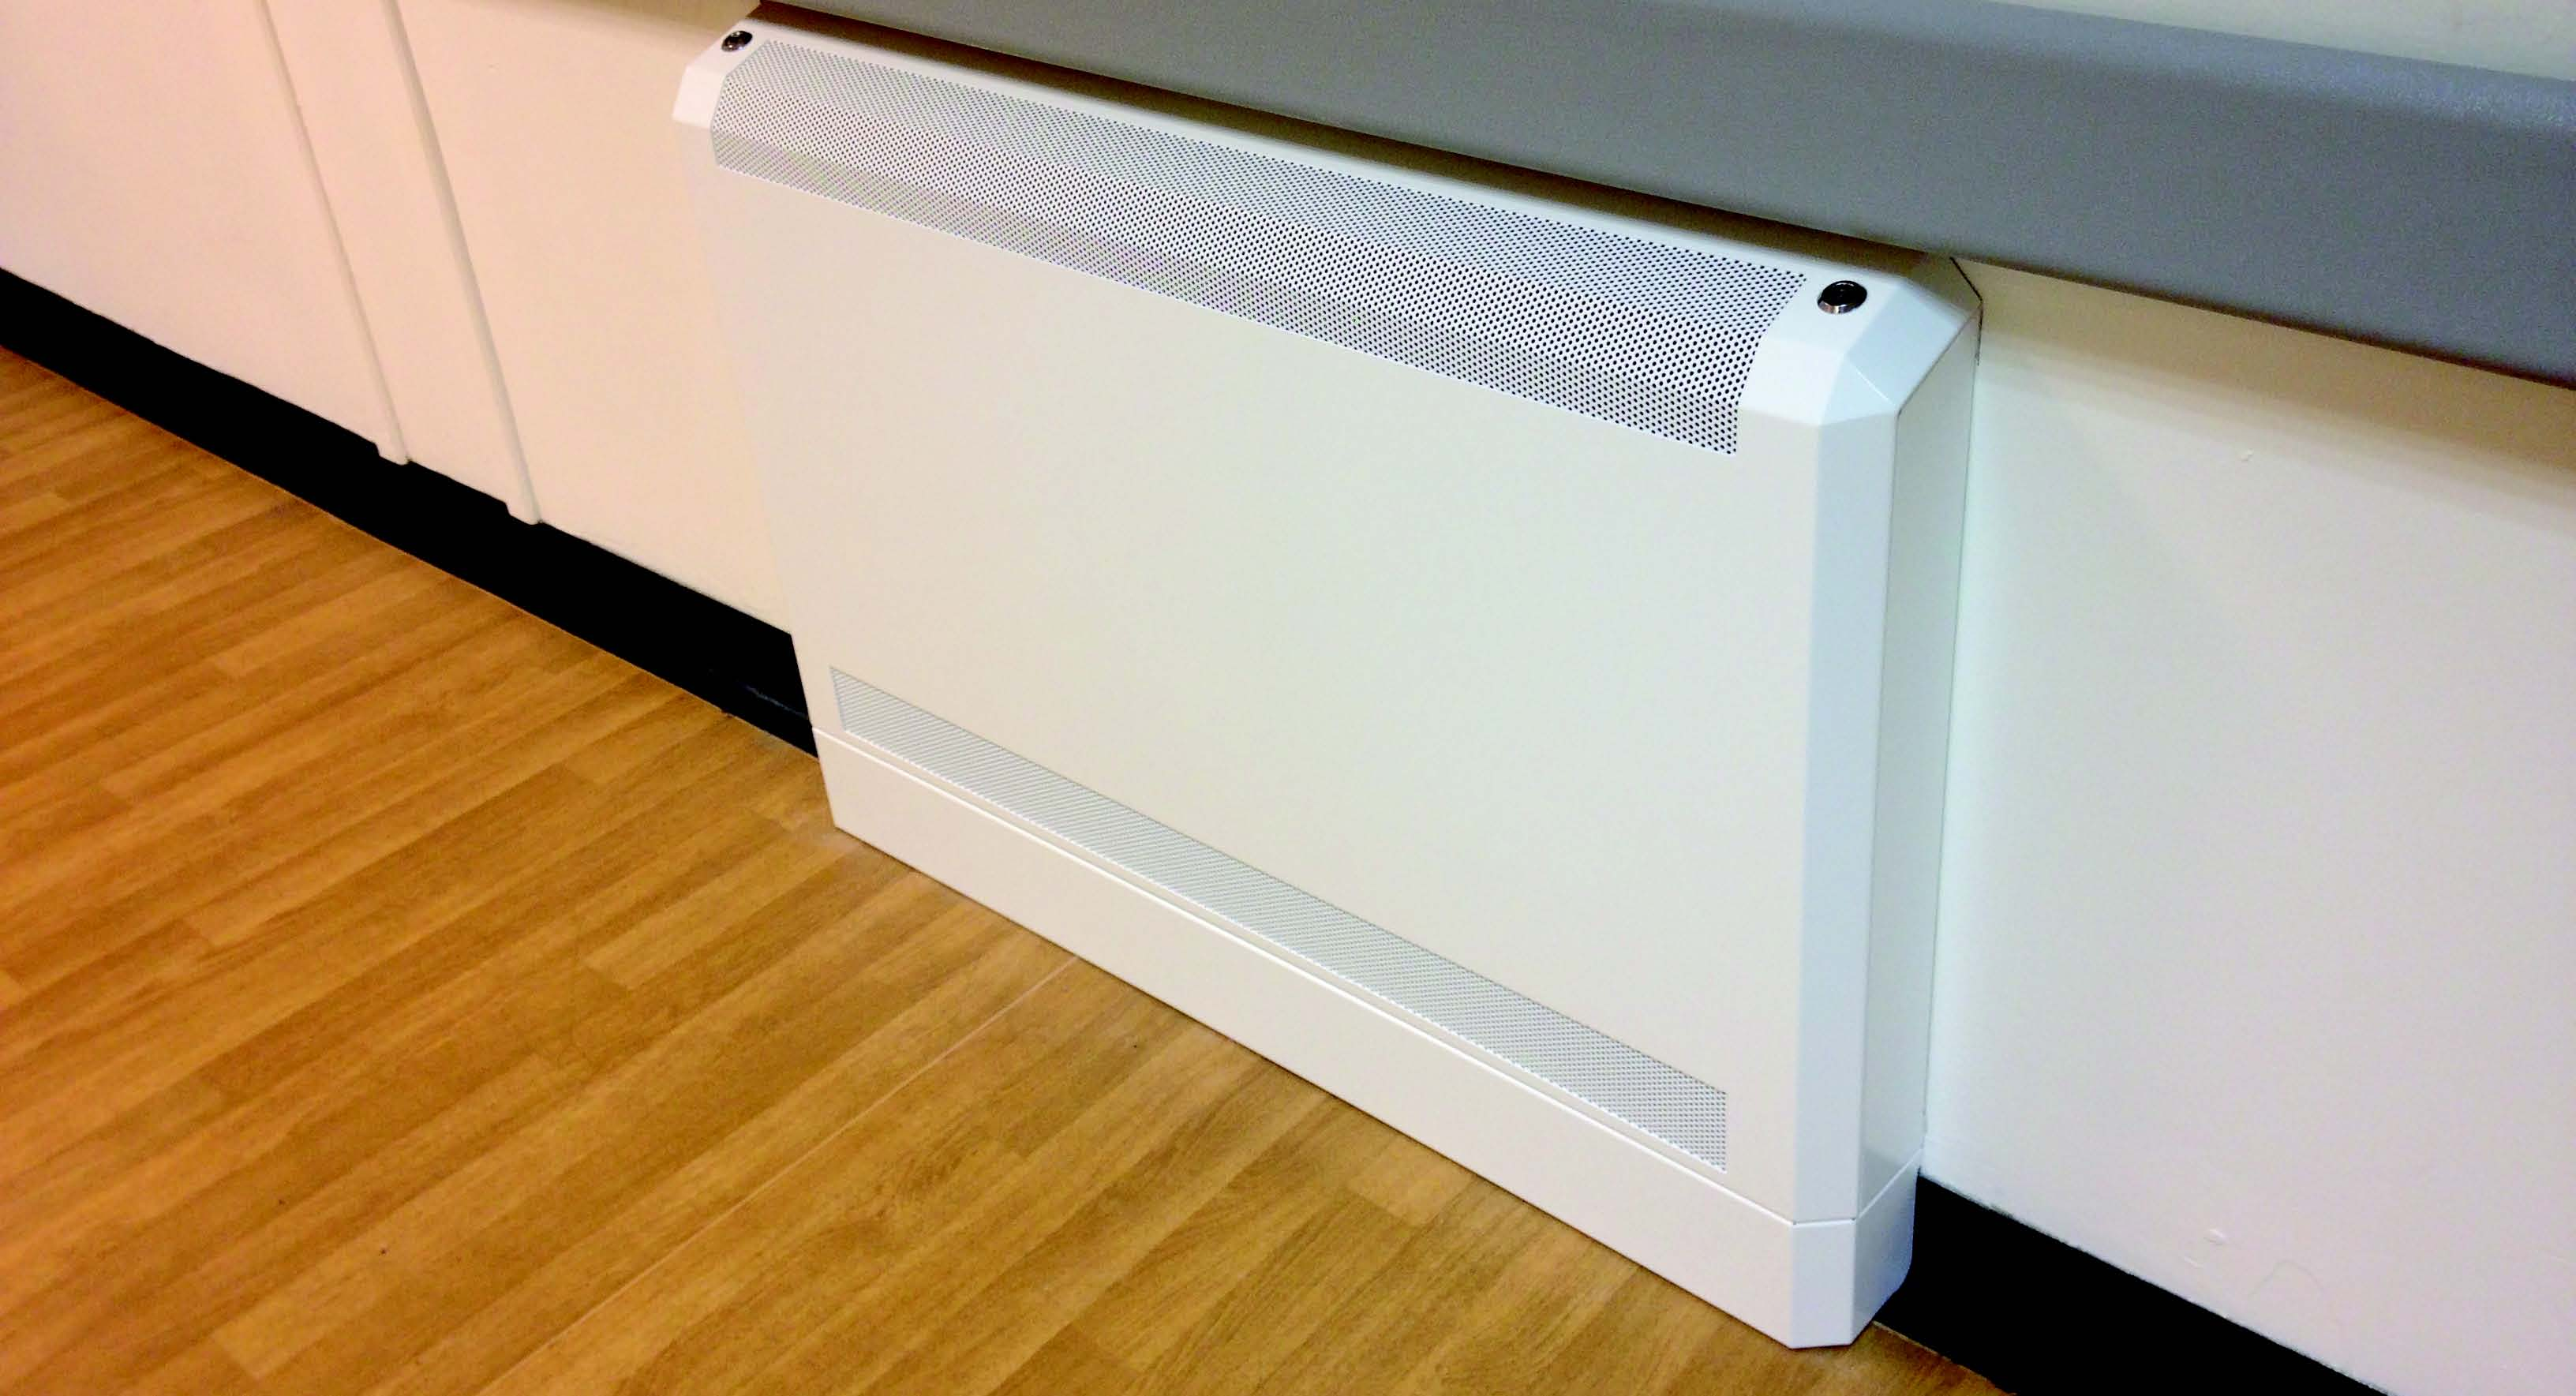 Clarke Delta Anti-Ligature Radiator Guards